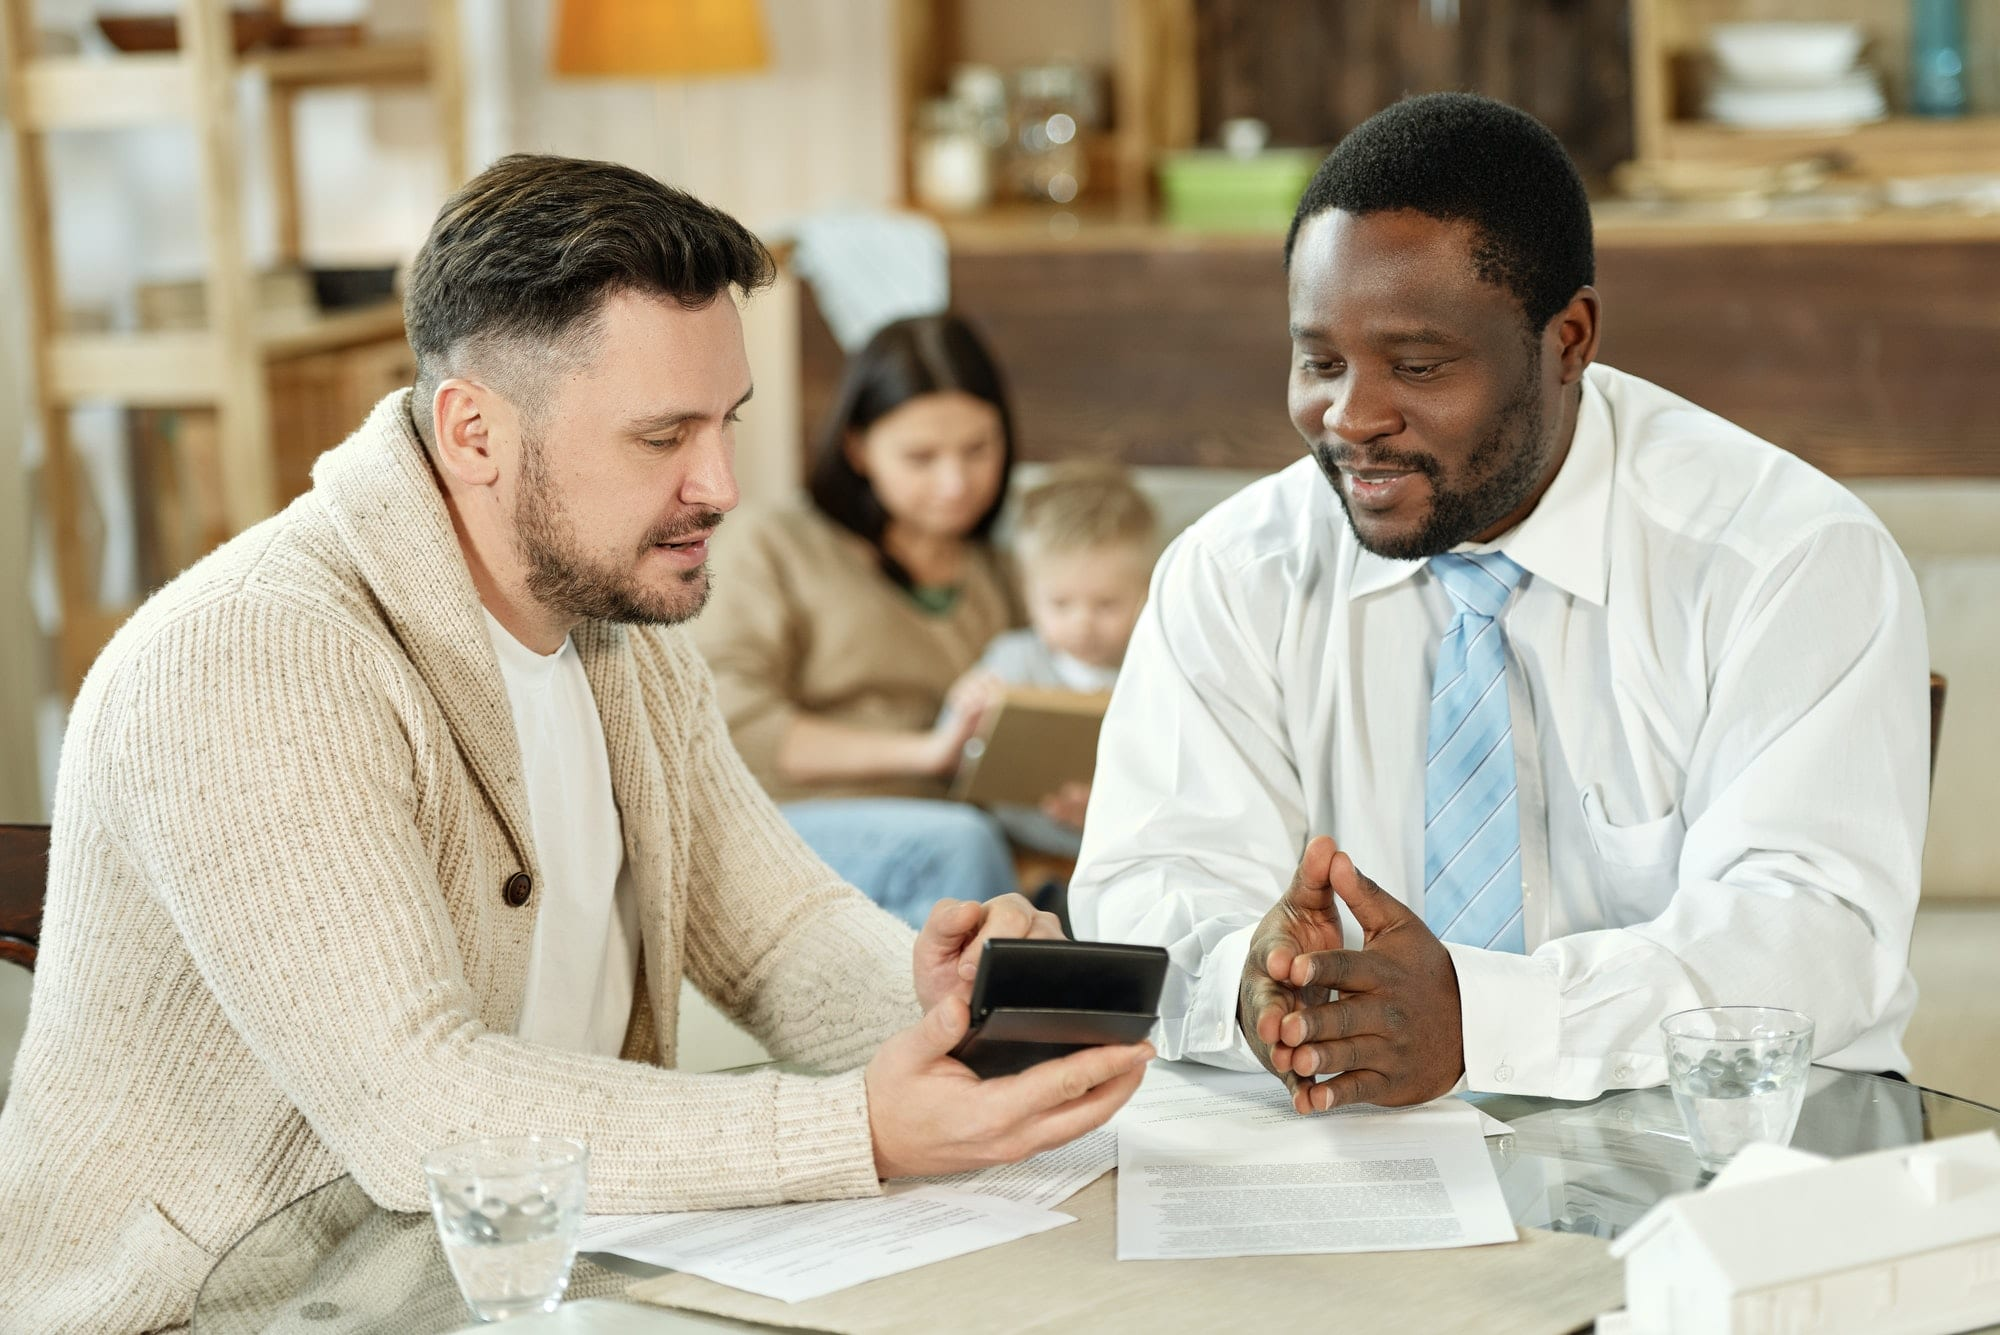 Ethnic man consulting client on home loan